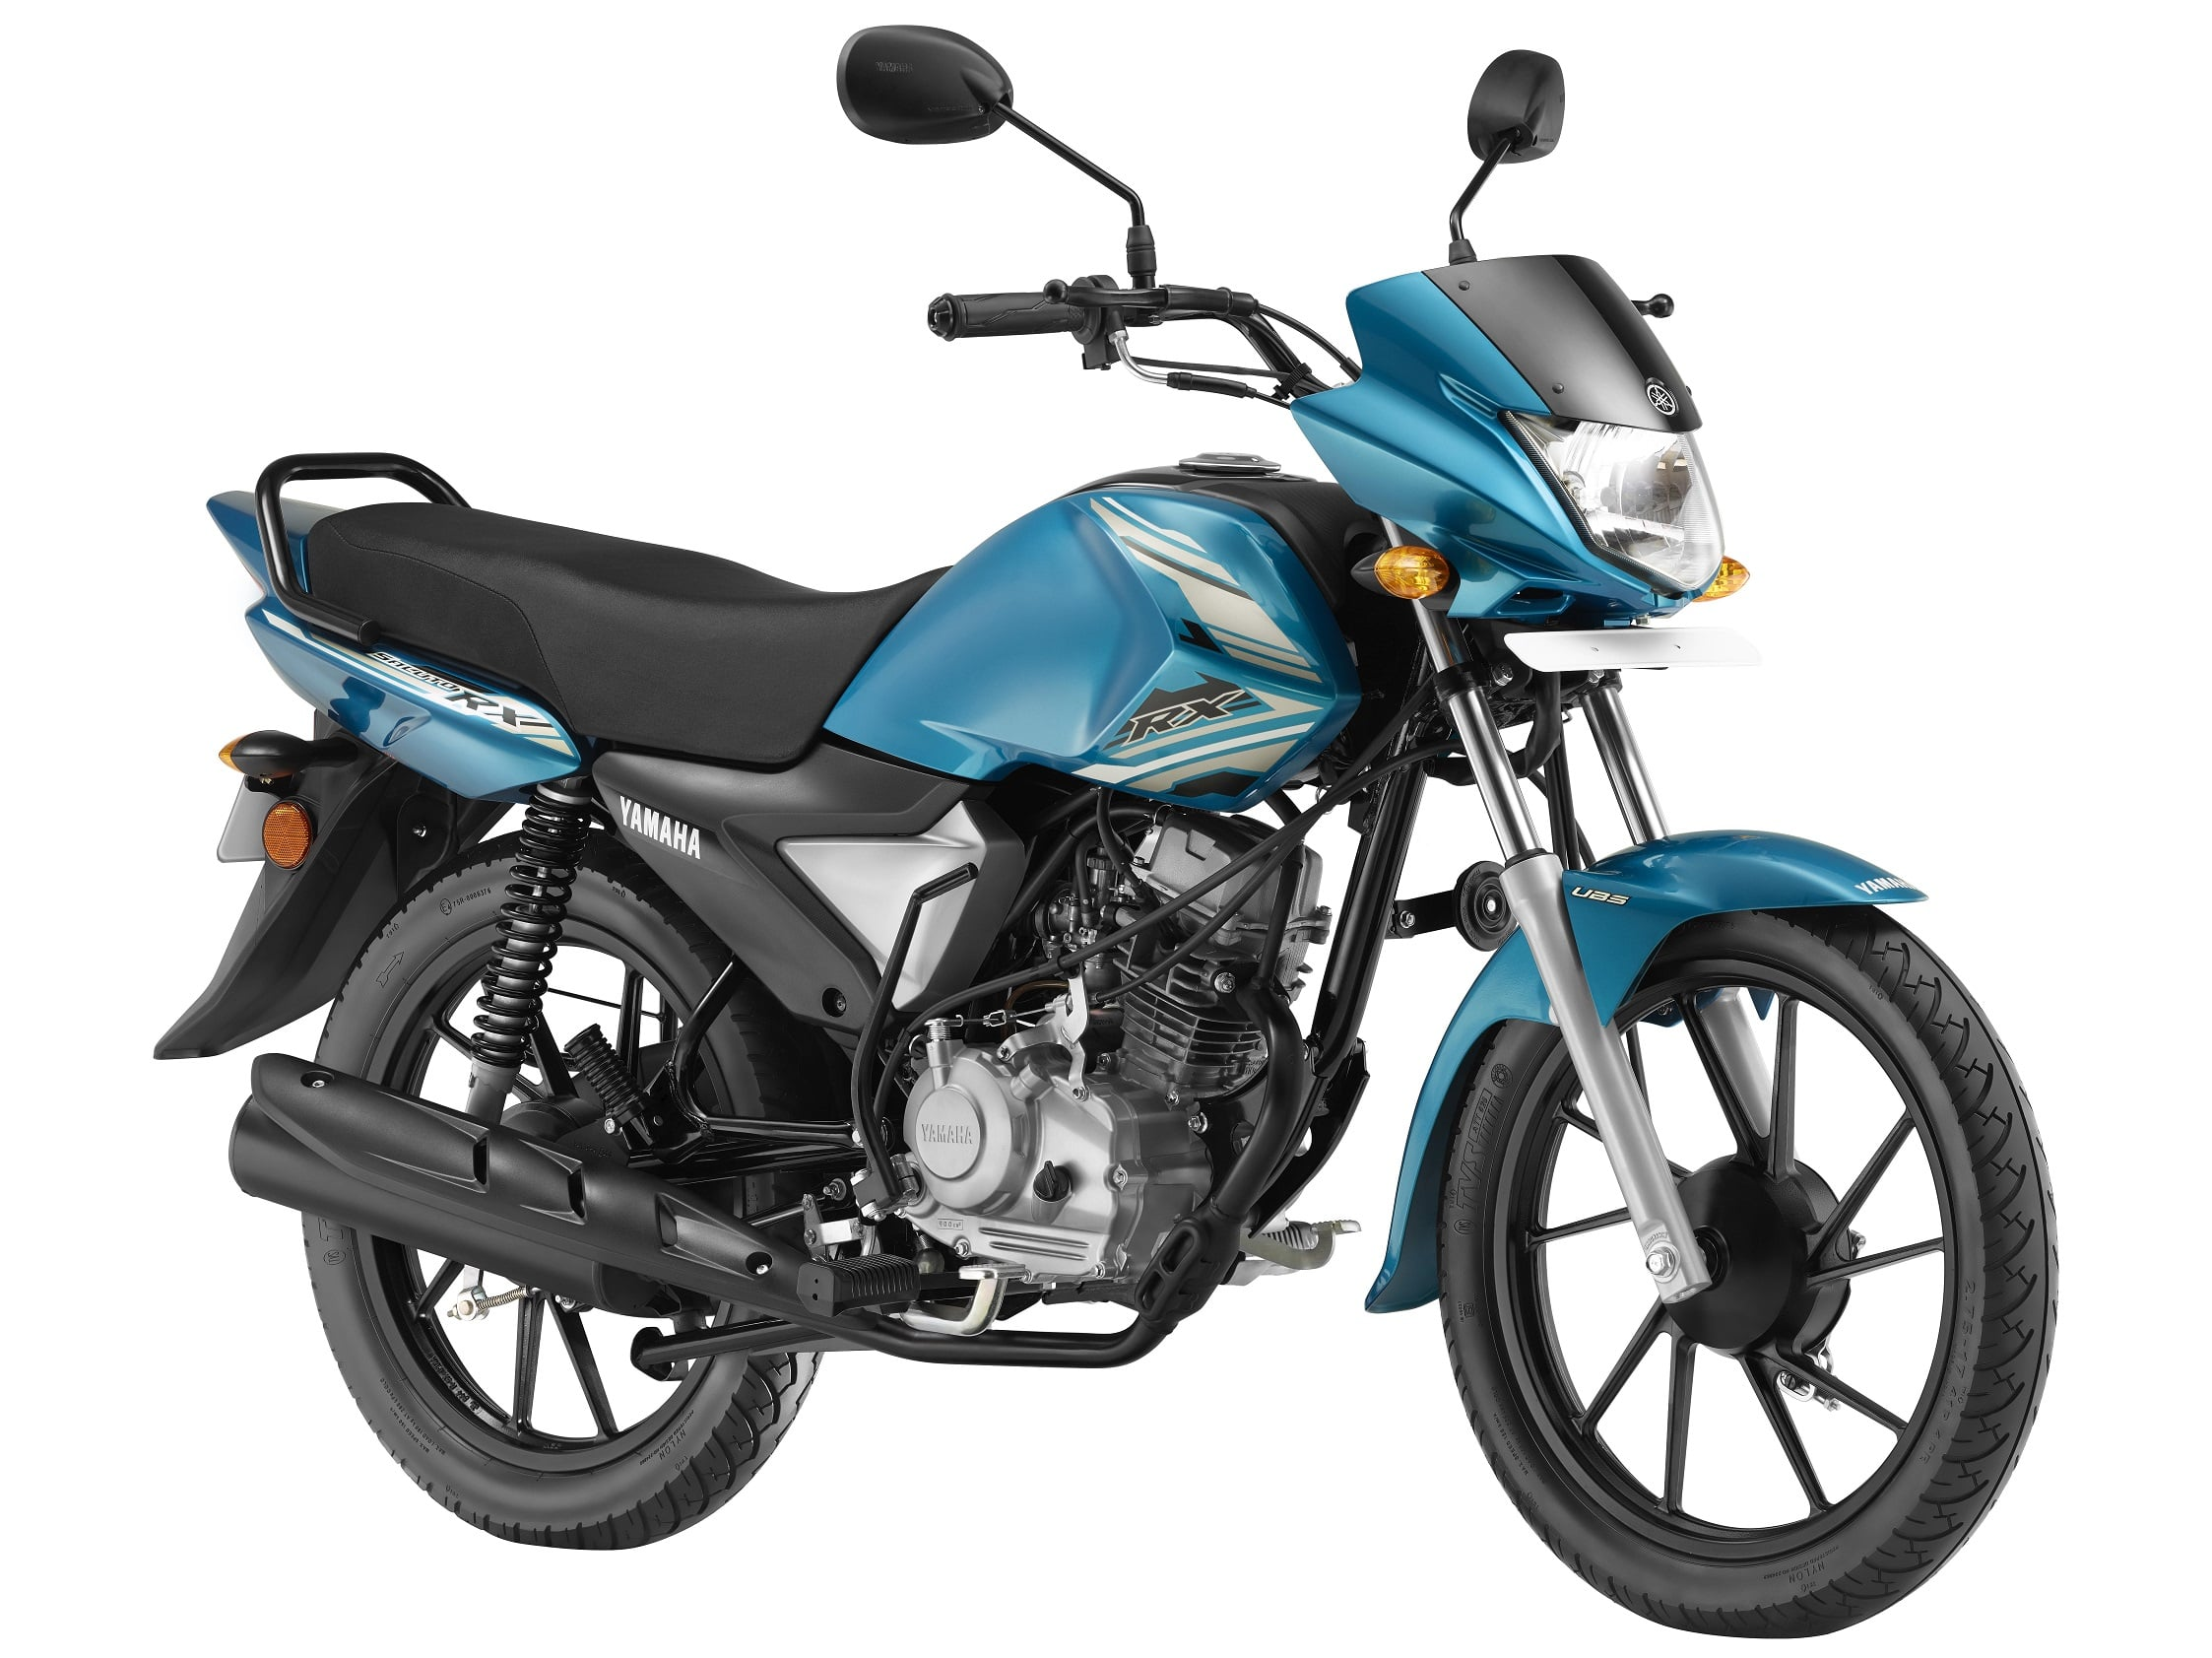 Yamaha Saluto Rx And 125 Launched With Unified Braking System